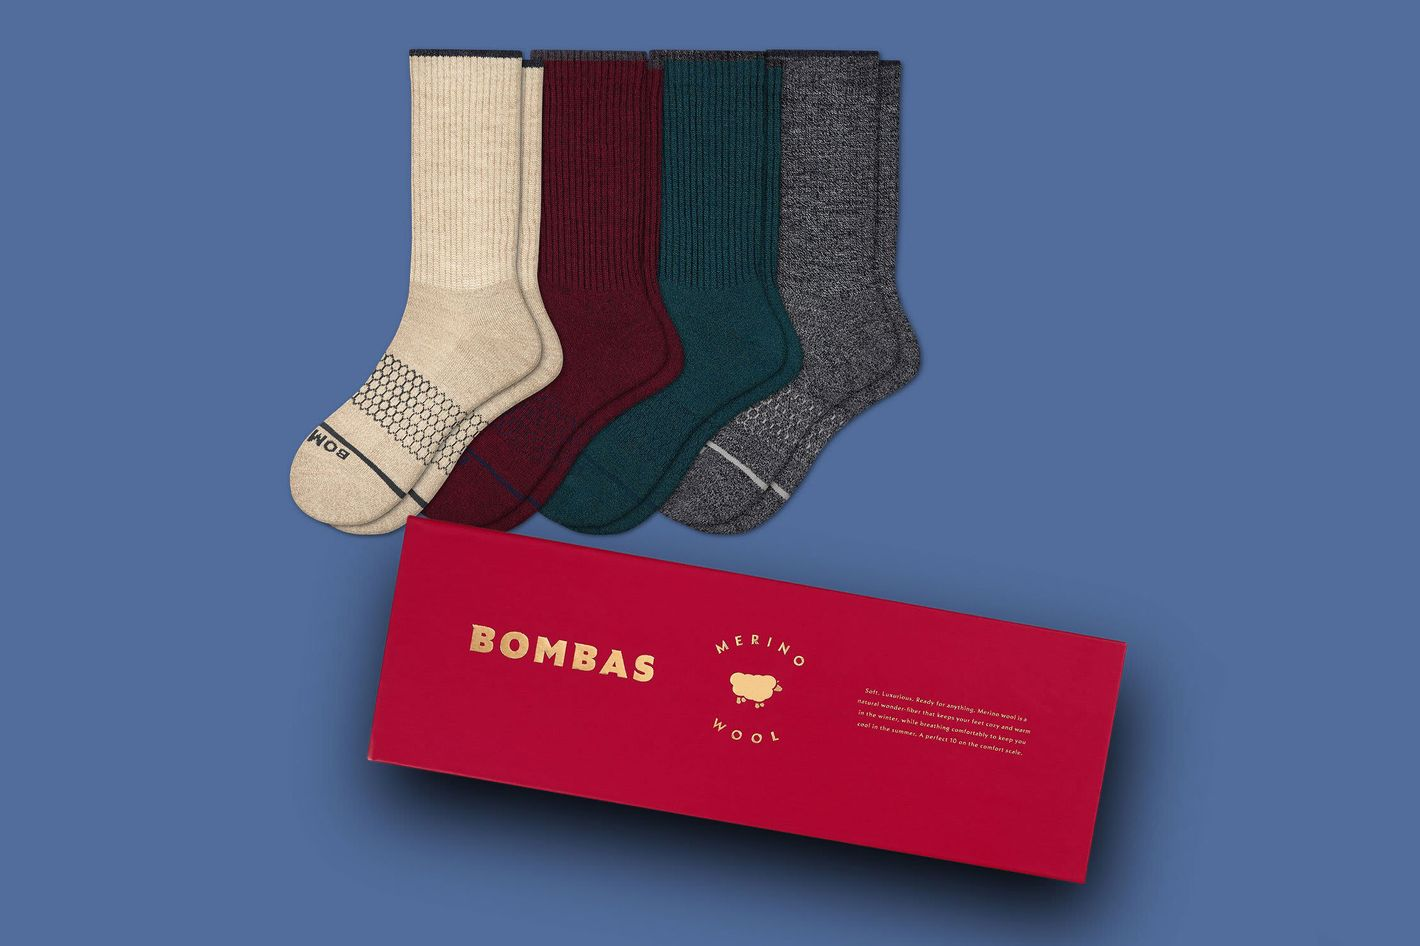 Bombas Mens Merino Wool Gift Box